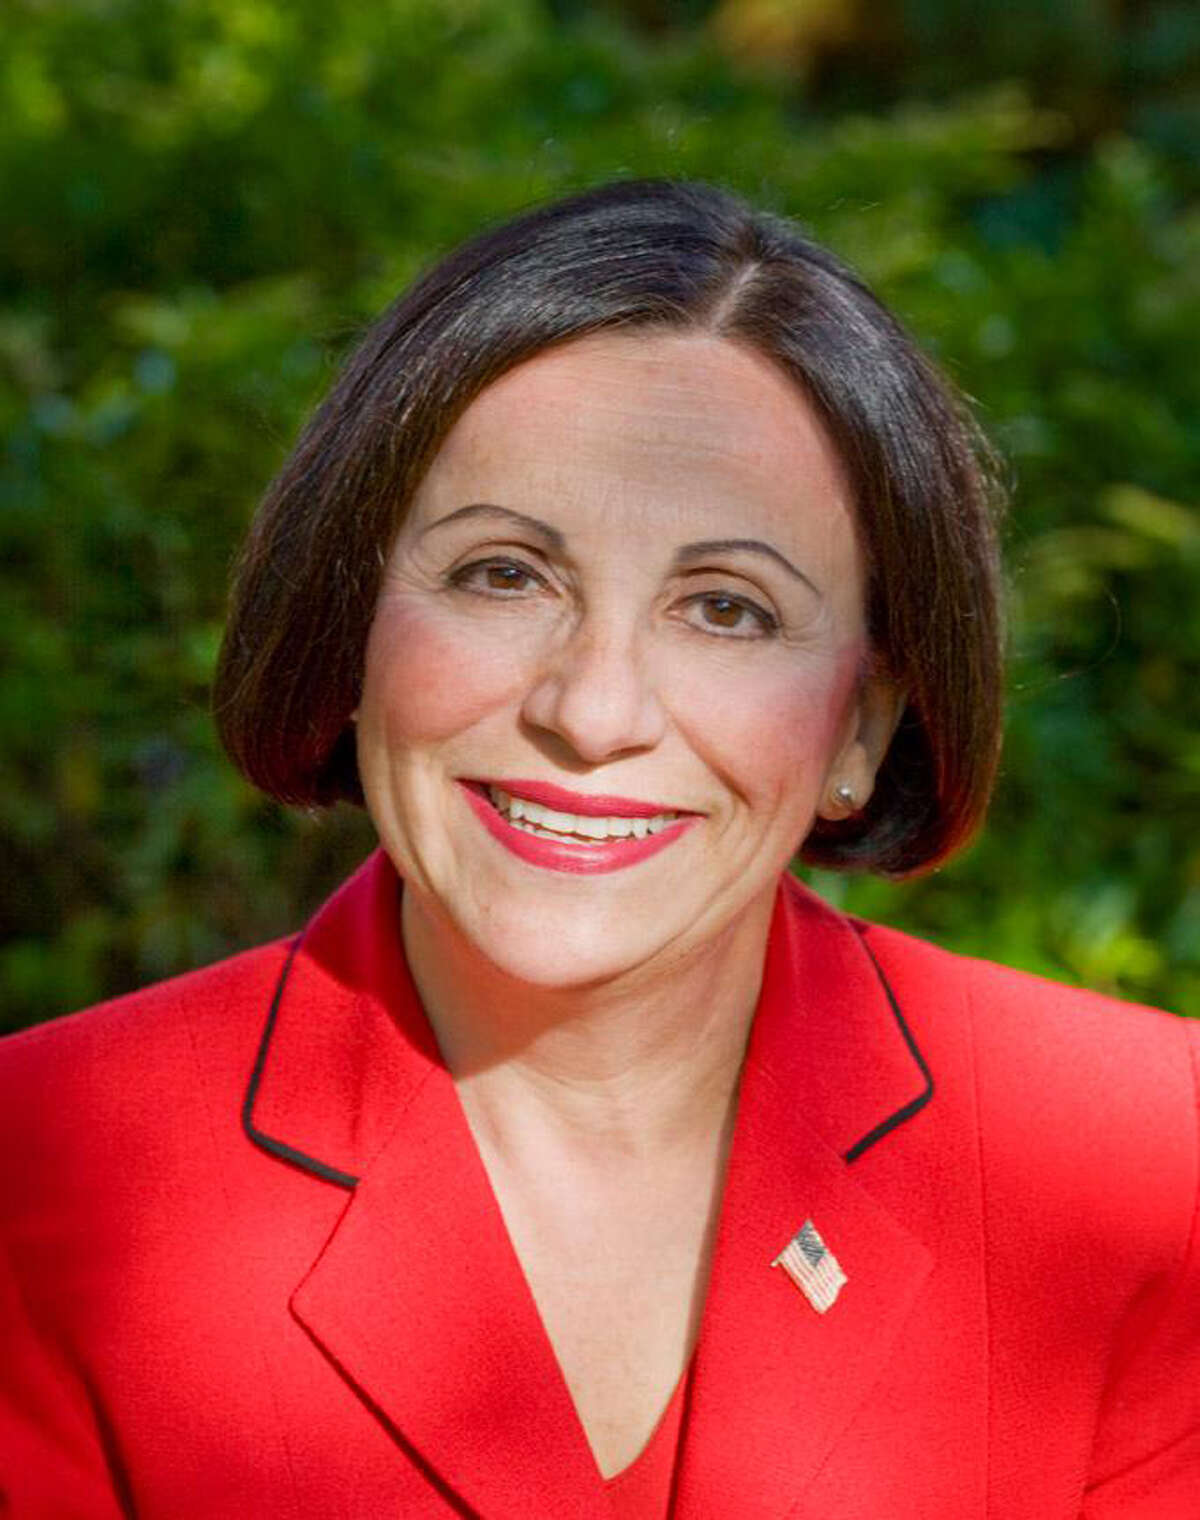 Toni Boucher is a CT businesswoman and former state senator, state representative, transportation committee co-chair, state board of education member, selectman and board of education chair. Contributed photo